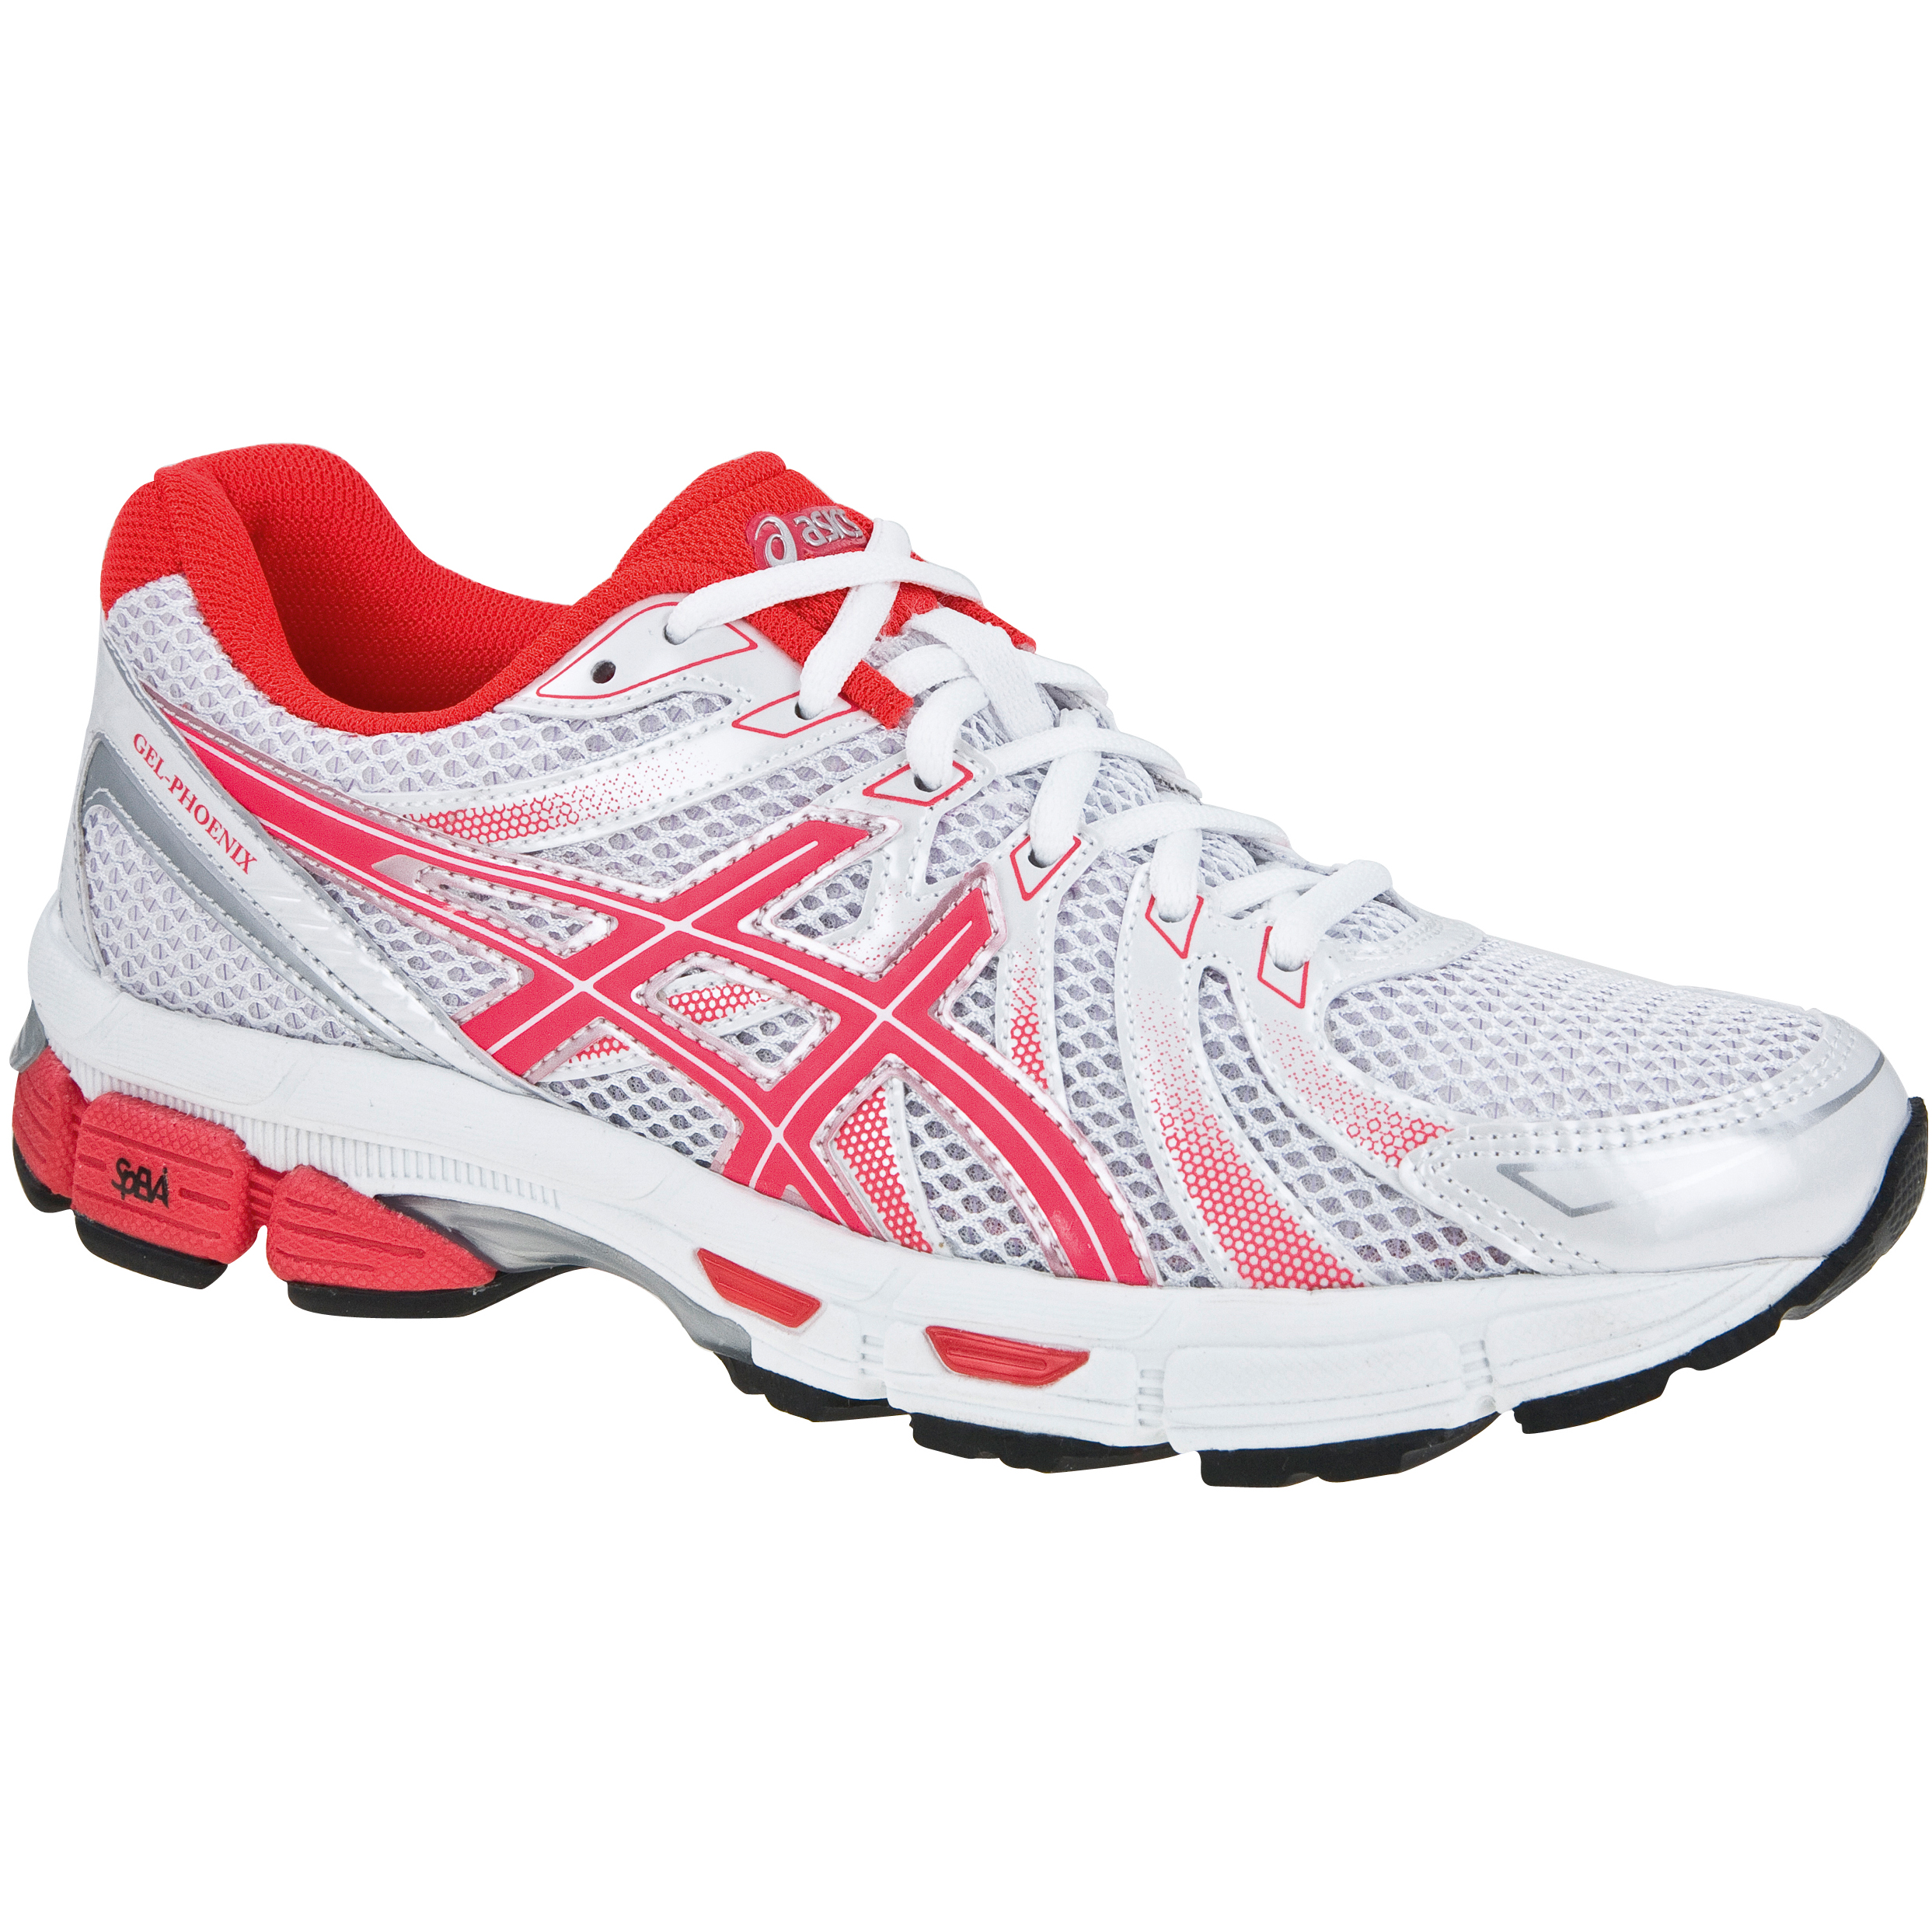 asics gel phoenix | Peninsula Conflict Resolution Center